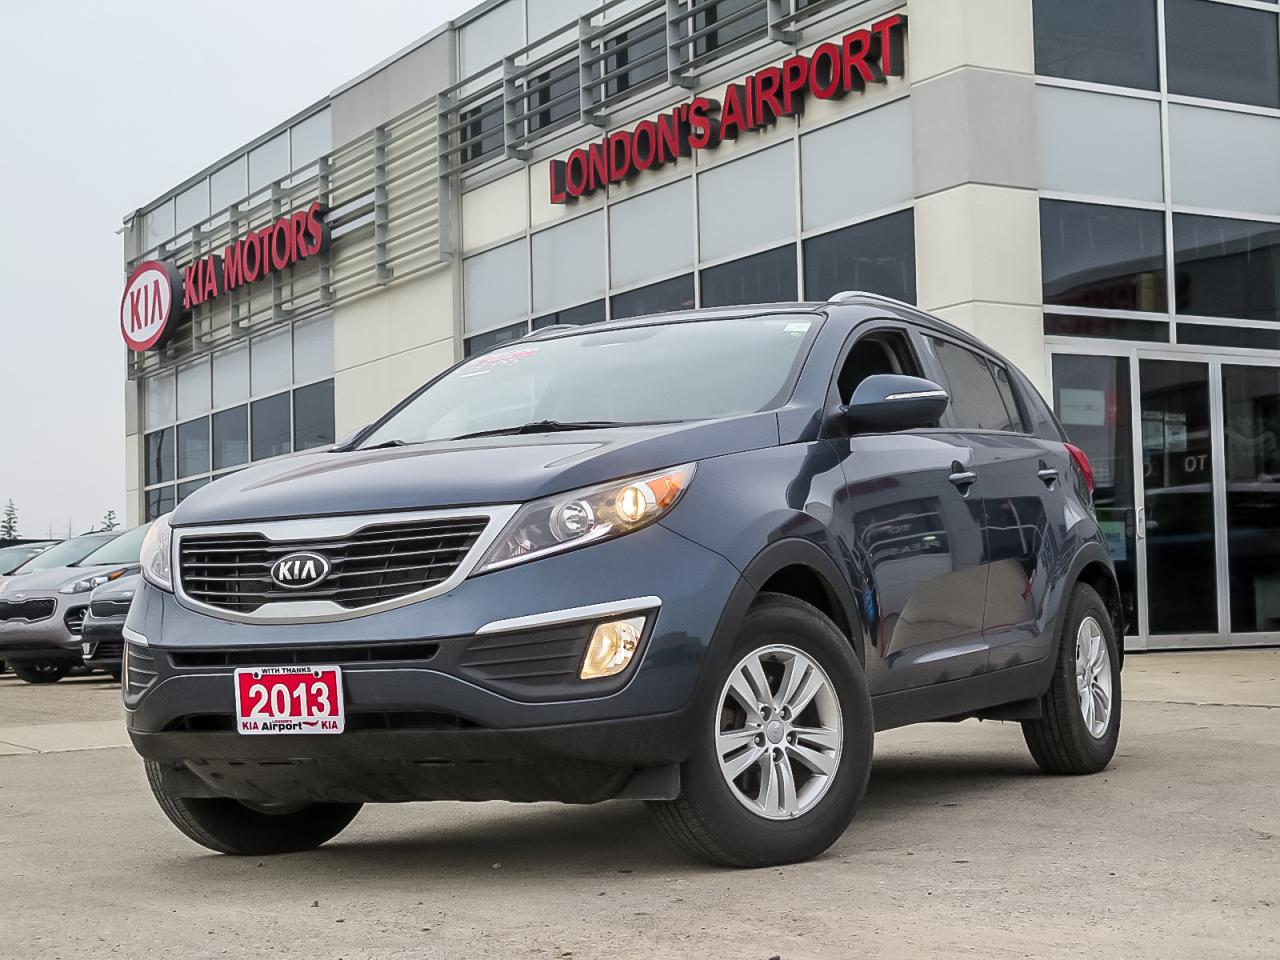 Airport Kia London >> Used 2013 Kia Sportage Lx For Sale In London Ontario